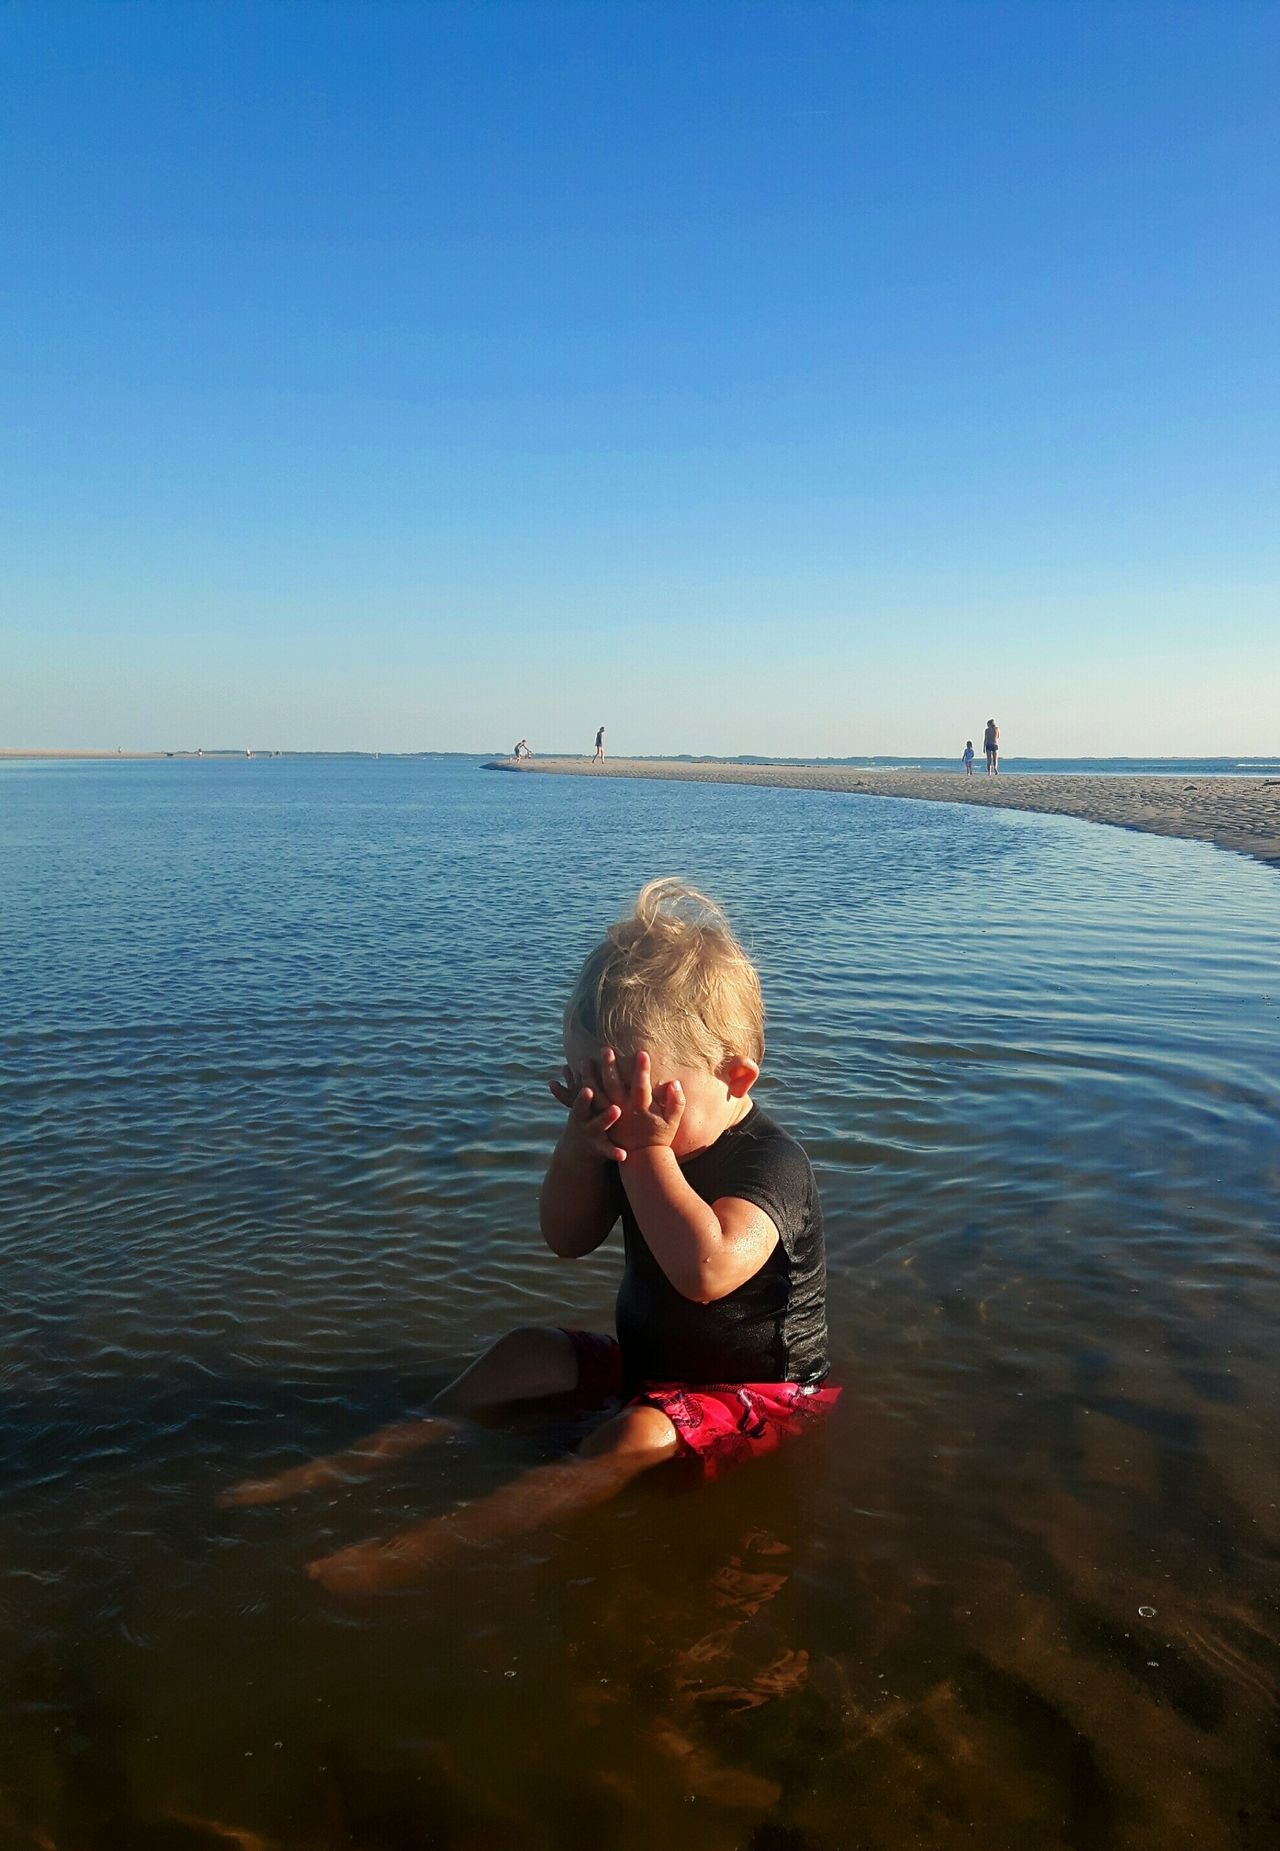 Children Only Summer Child Sea Beach Childhood Swimming One Person Water Toddlerlife Toddler Boy Children Photography Children Of The World Eyes Closed  EyeEmNewHere Child In Nature Toddlersofeyem Childhoodunplugged Noordzeestrand Tweede Maasvlakte Child Playing At The Beach Northsea Childphotography Toddler Photography Childrenphoto The Portraitist - 2017 EyeEm Awards The Great Outdoors - 2017 EyeEm Awards Live For The Story